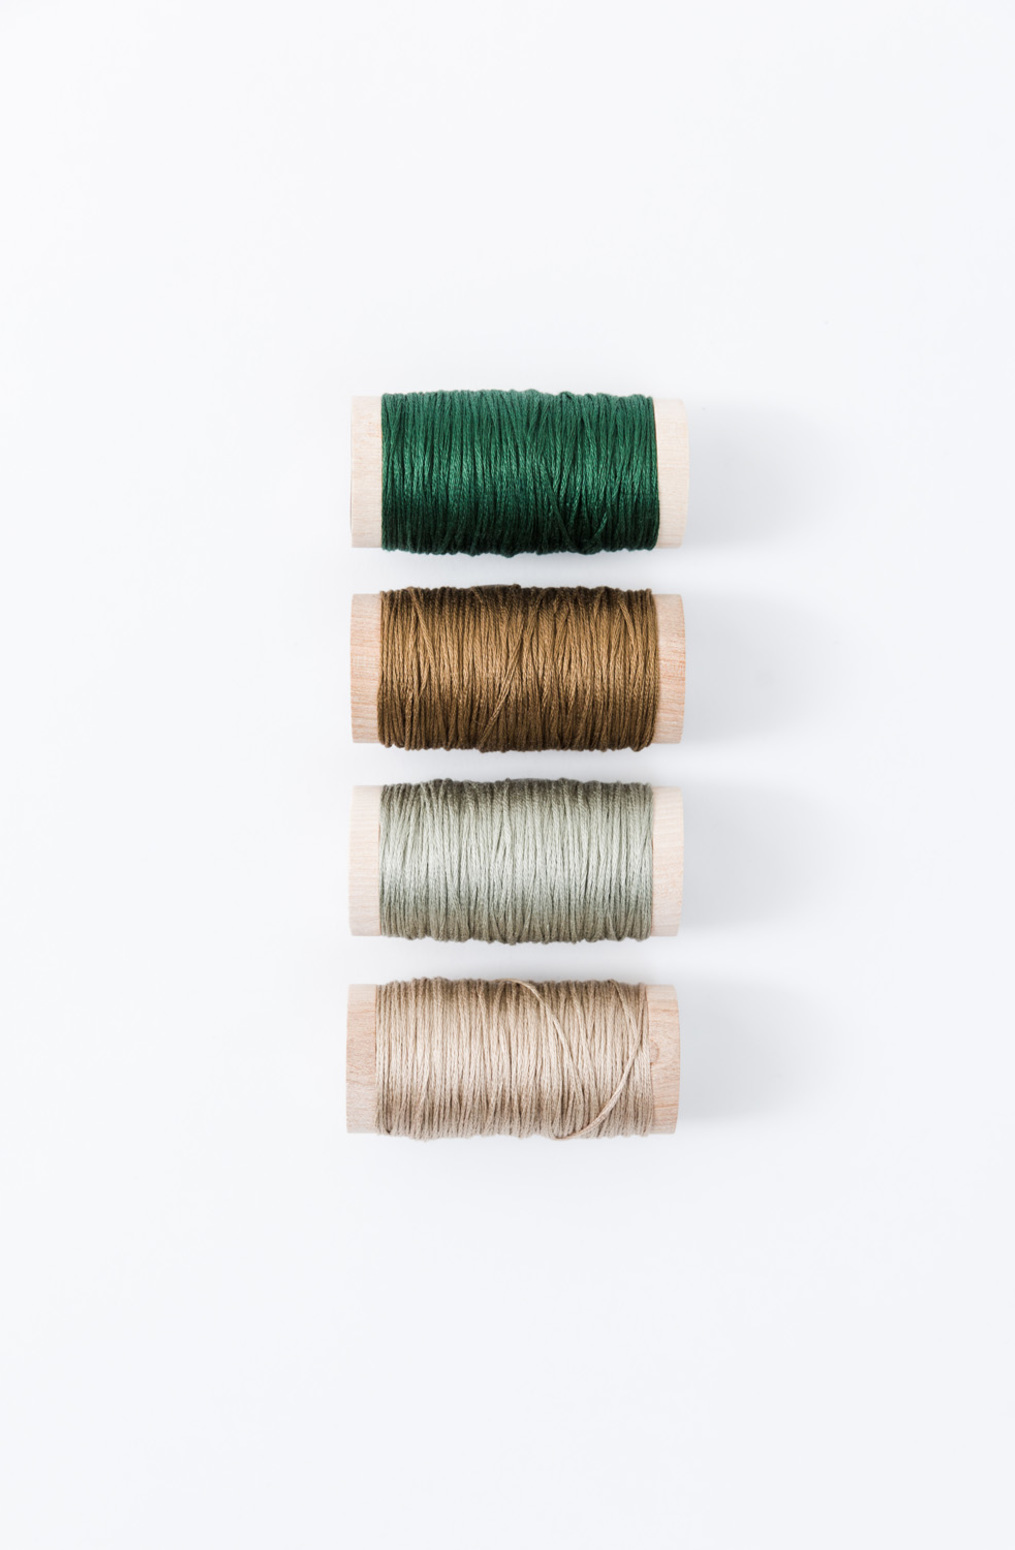 The school of making embroidery floss